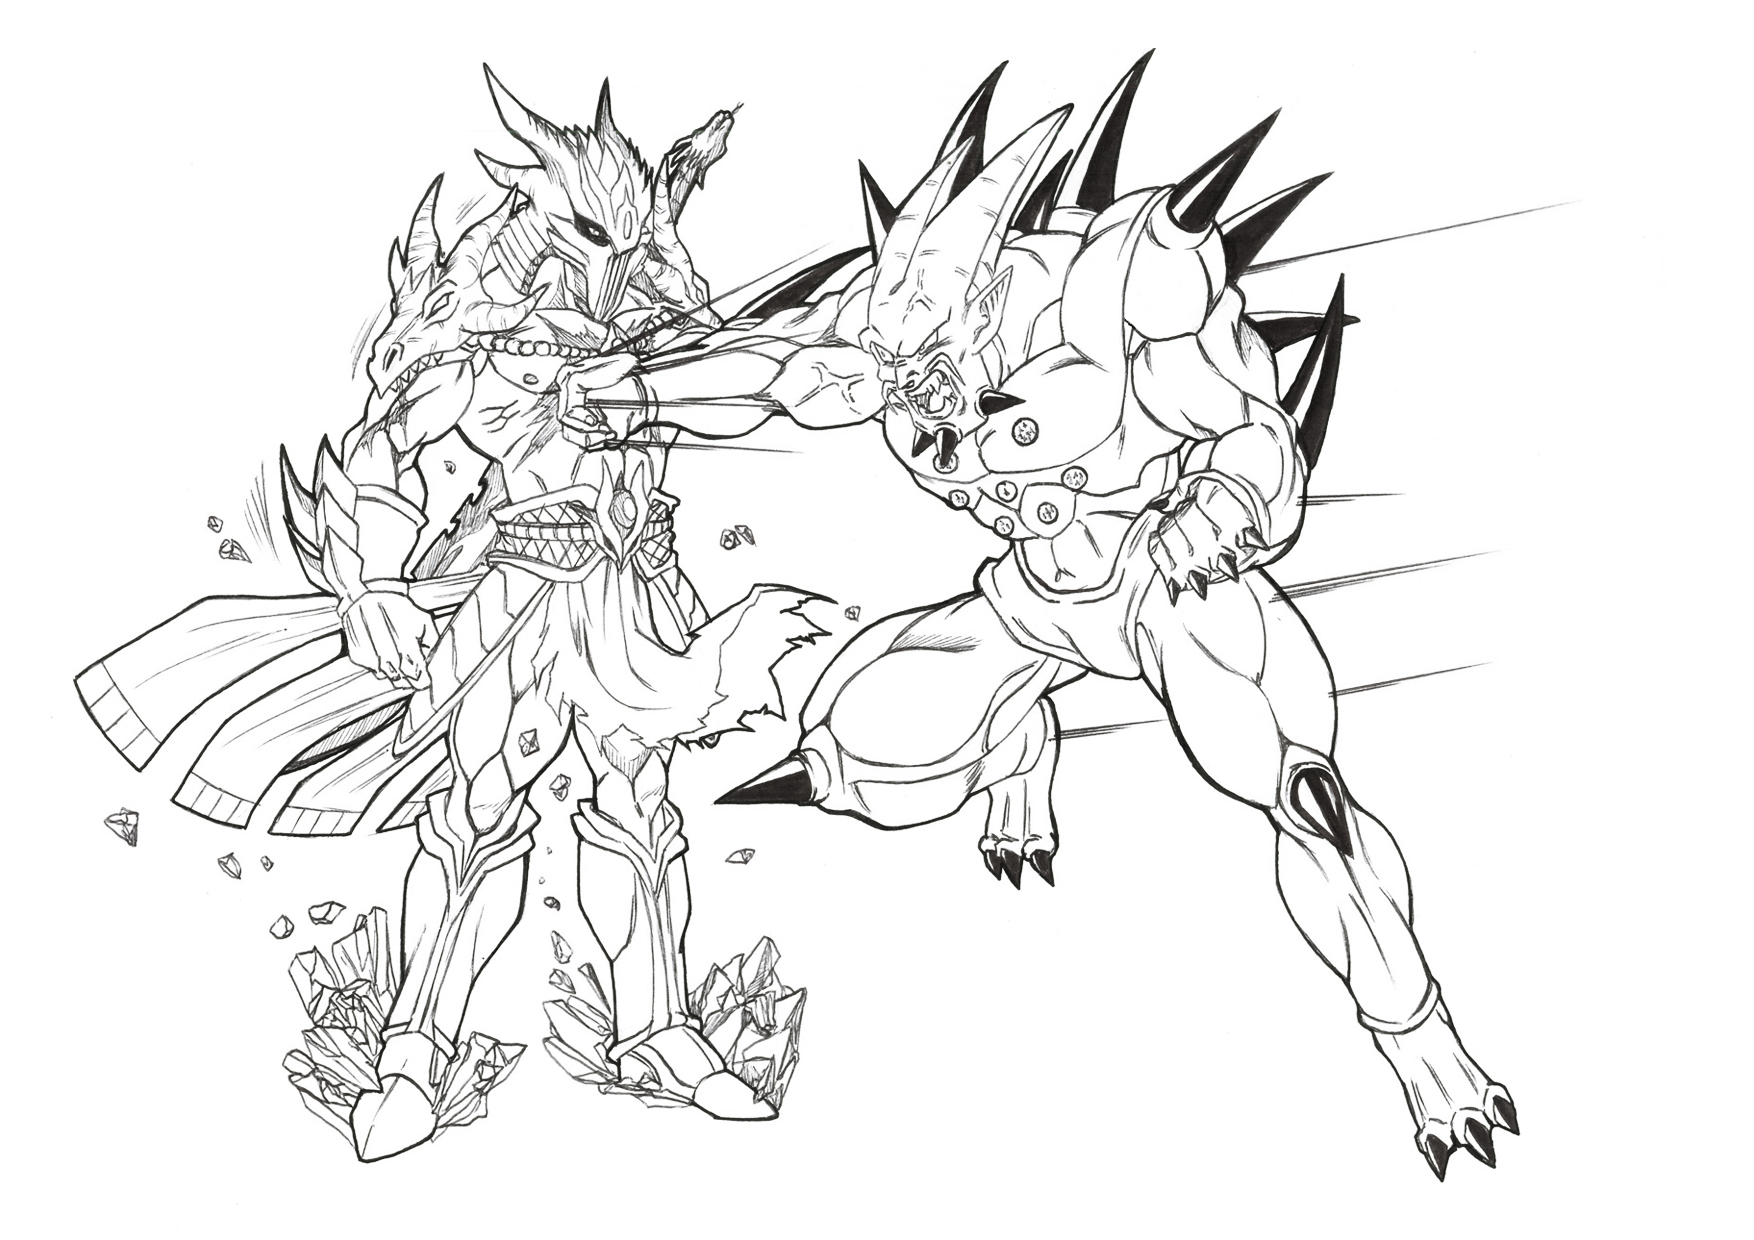 Similiar Drawings Of Dragon Ball Z Omega Shenron Keywords